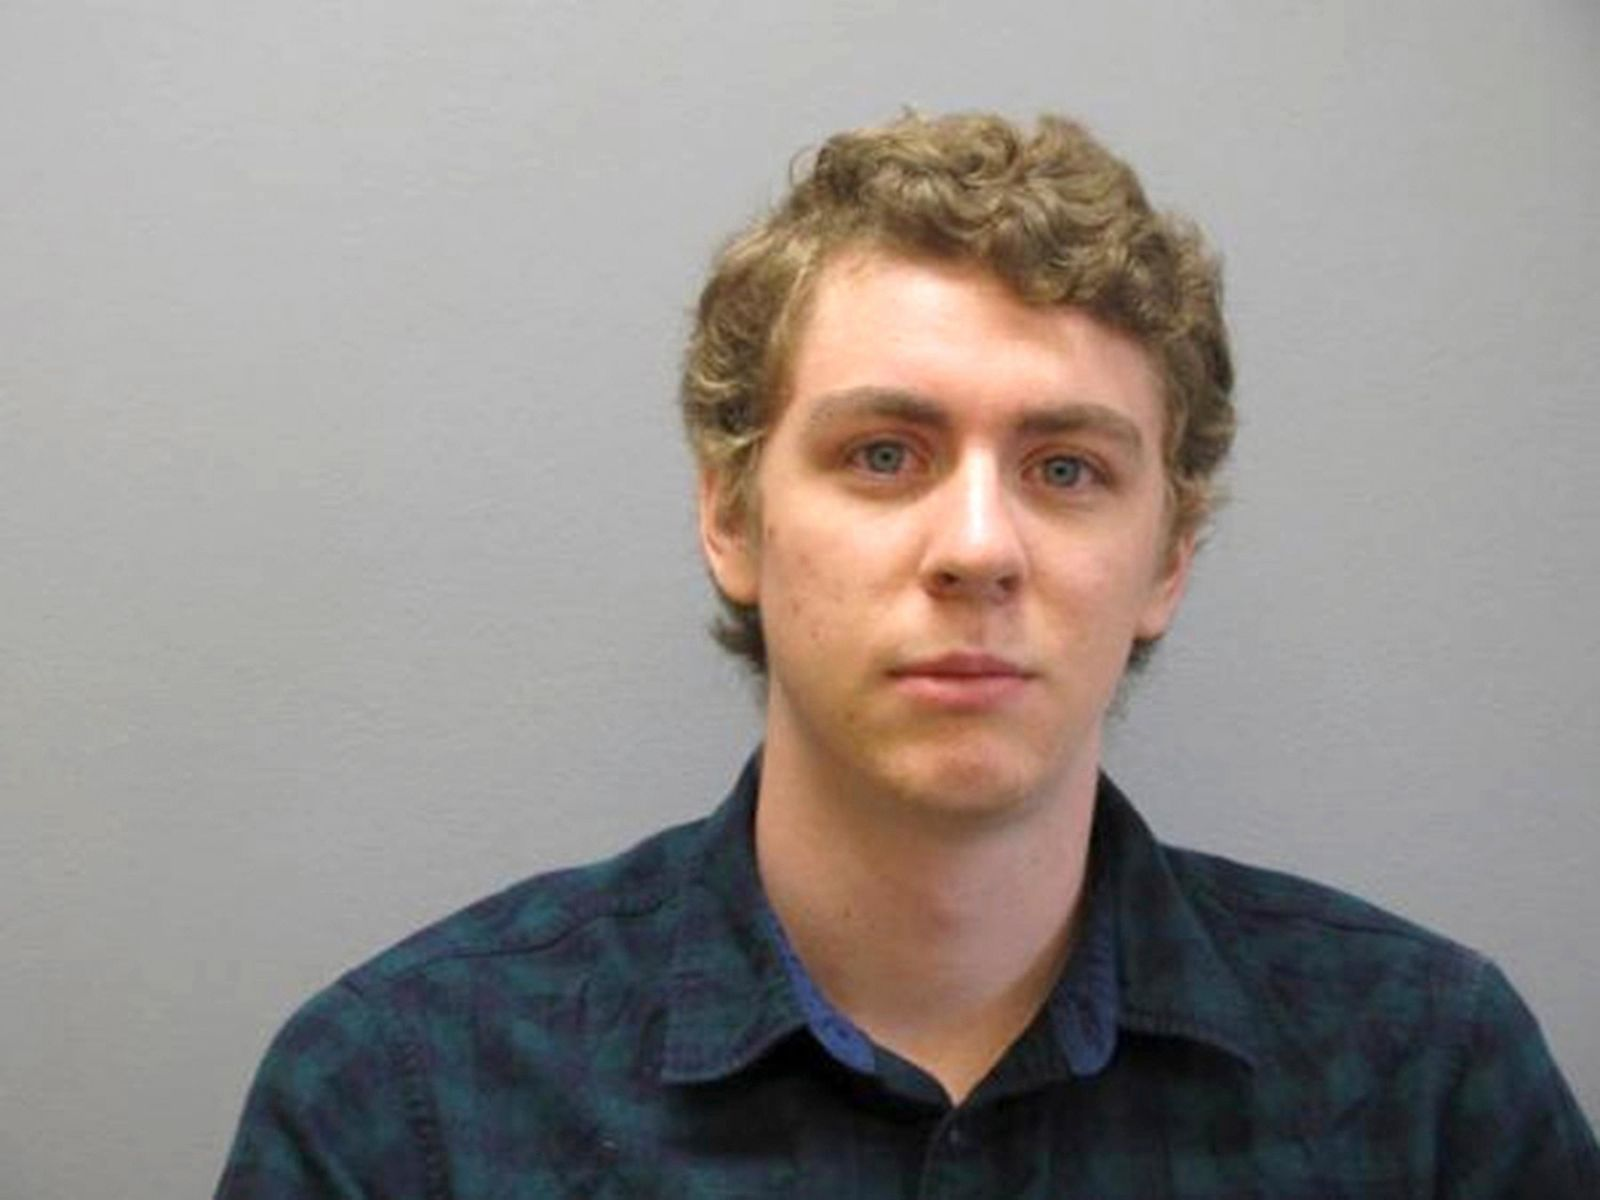 FILE - This Sept. 6, 2016 file photo released by the Greene County Sheriff's Office, shows Brock Turner at the Greene County Sheriff's Office in Xenia, Ohio, where he officially registered as a sex offender. (Greene County Sheriff's Office via AP, File)